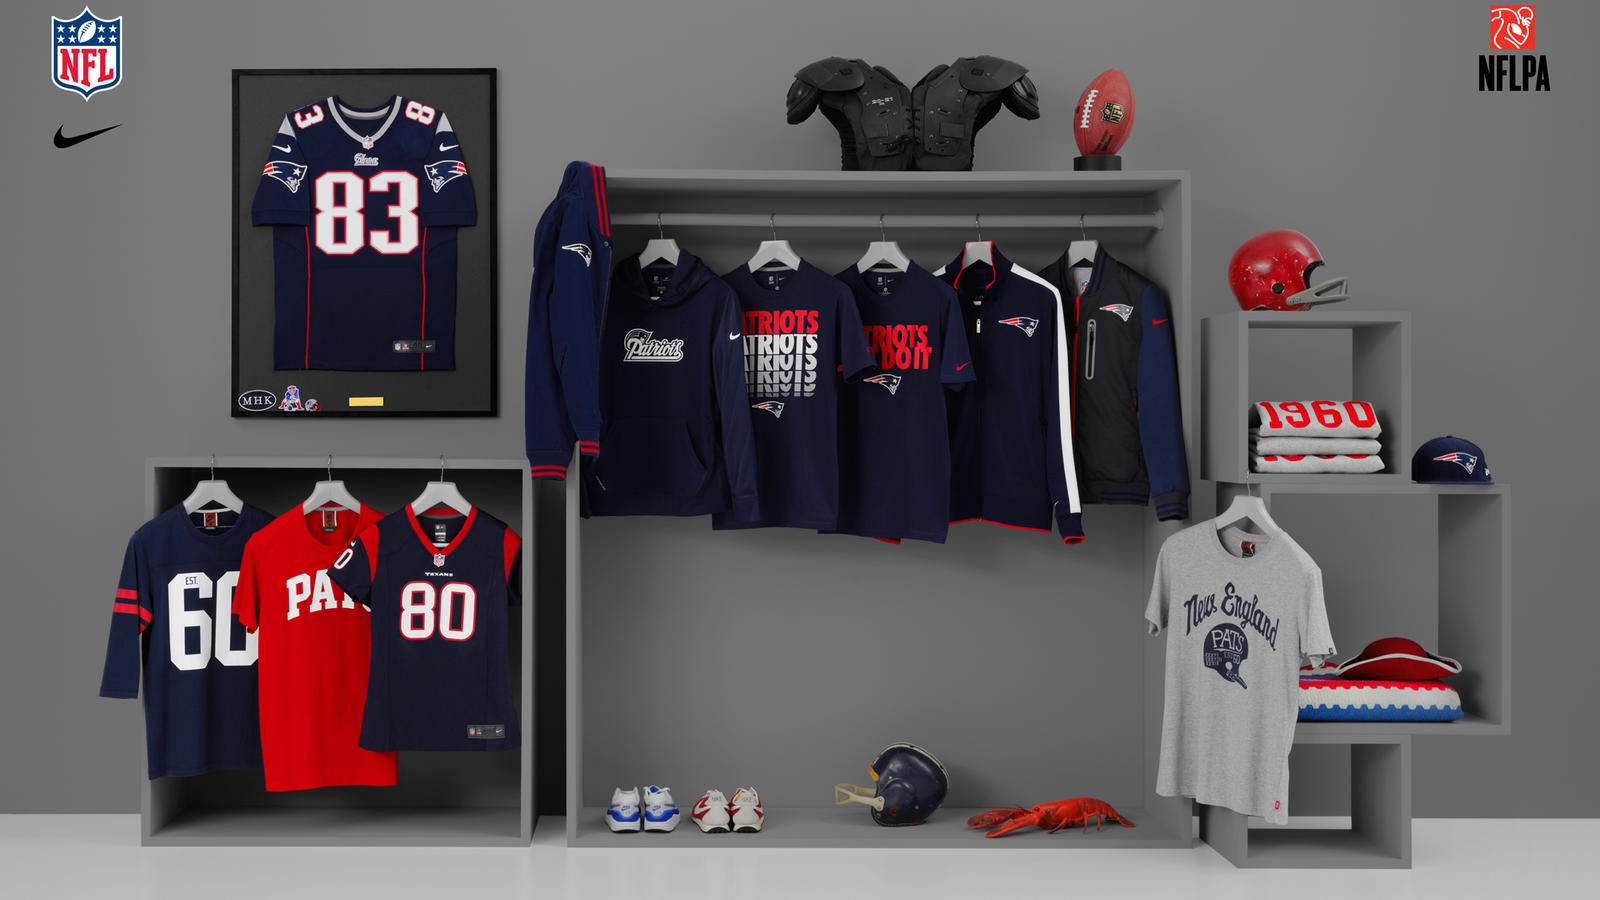 latest Nike Football gear from around